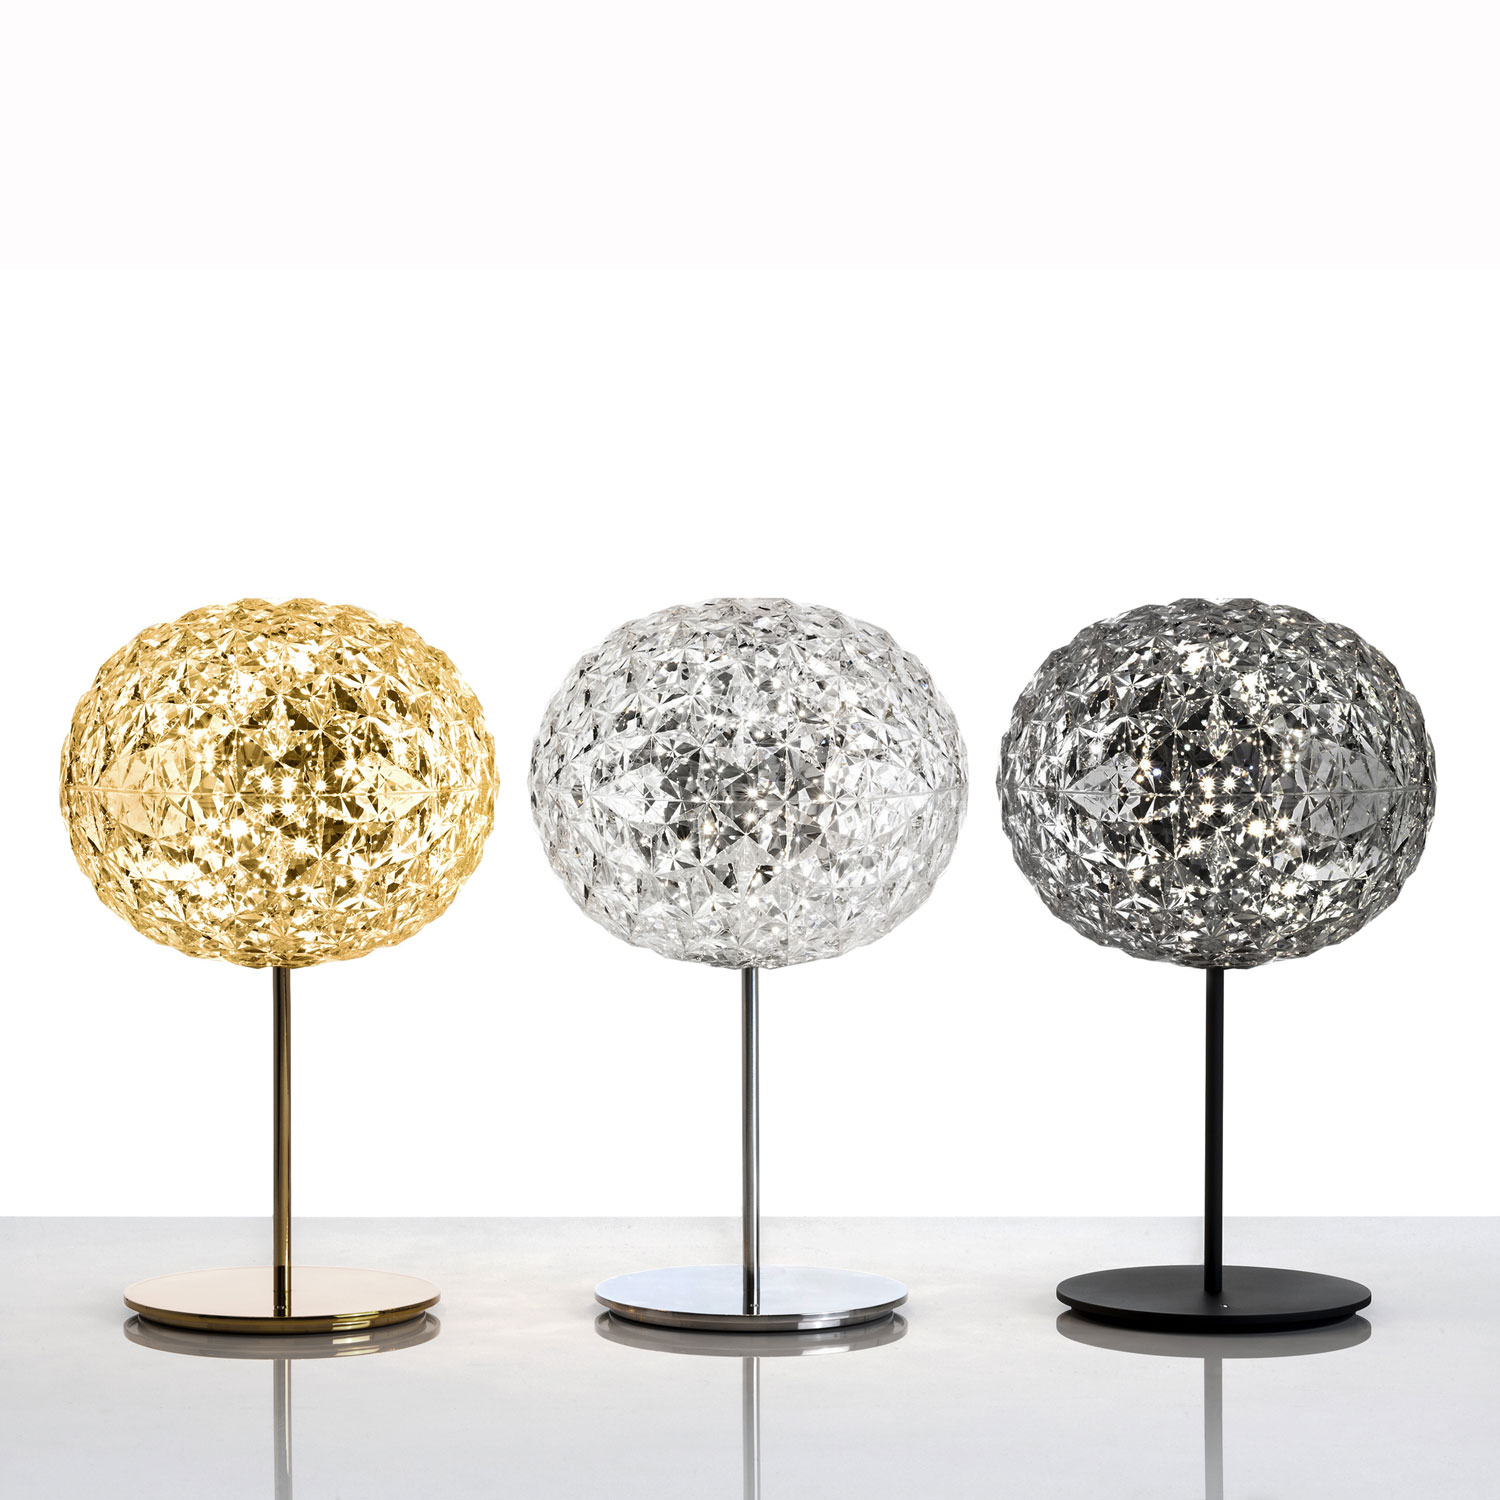 Lamp Kartell Kartell Planet Table Lamp With Dimmer By Tokujin Yoshioka